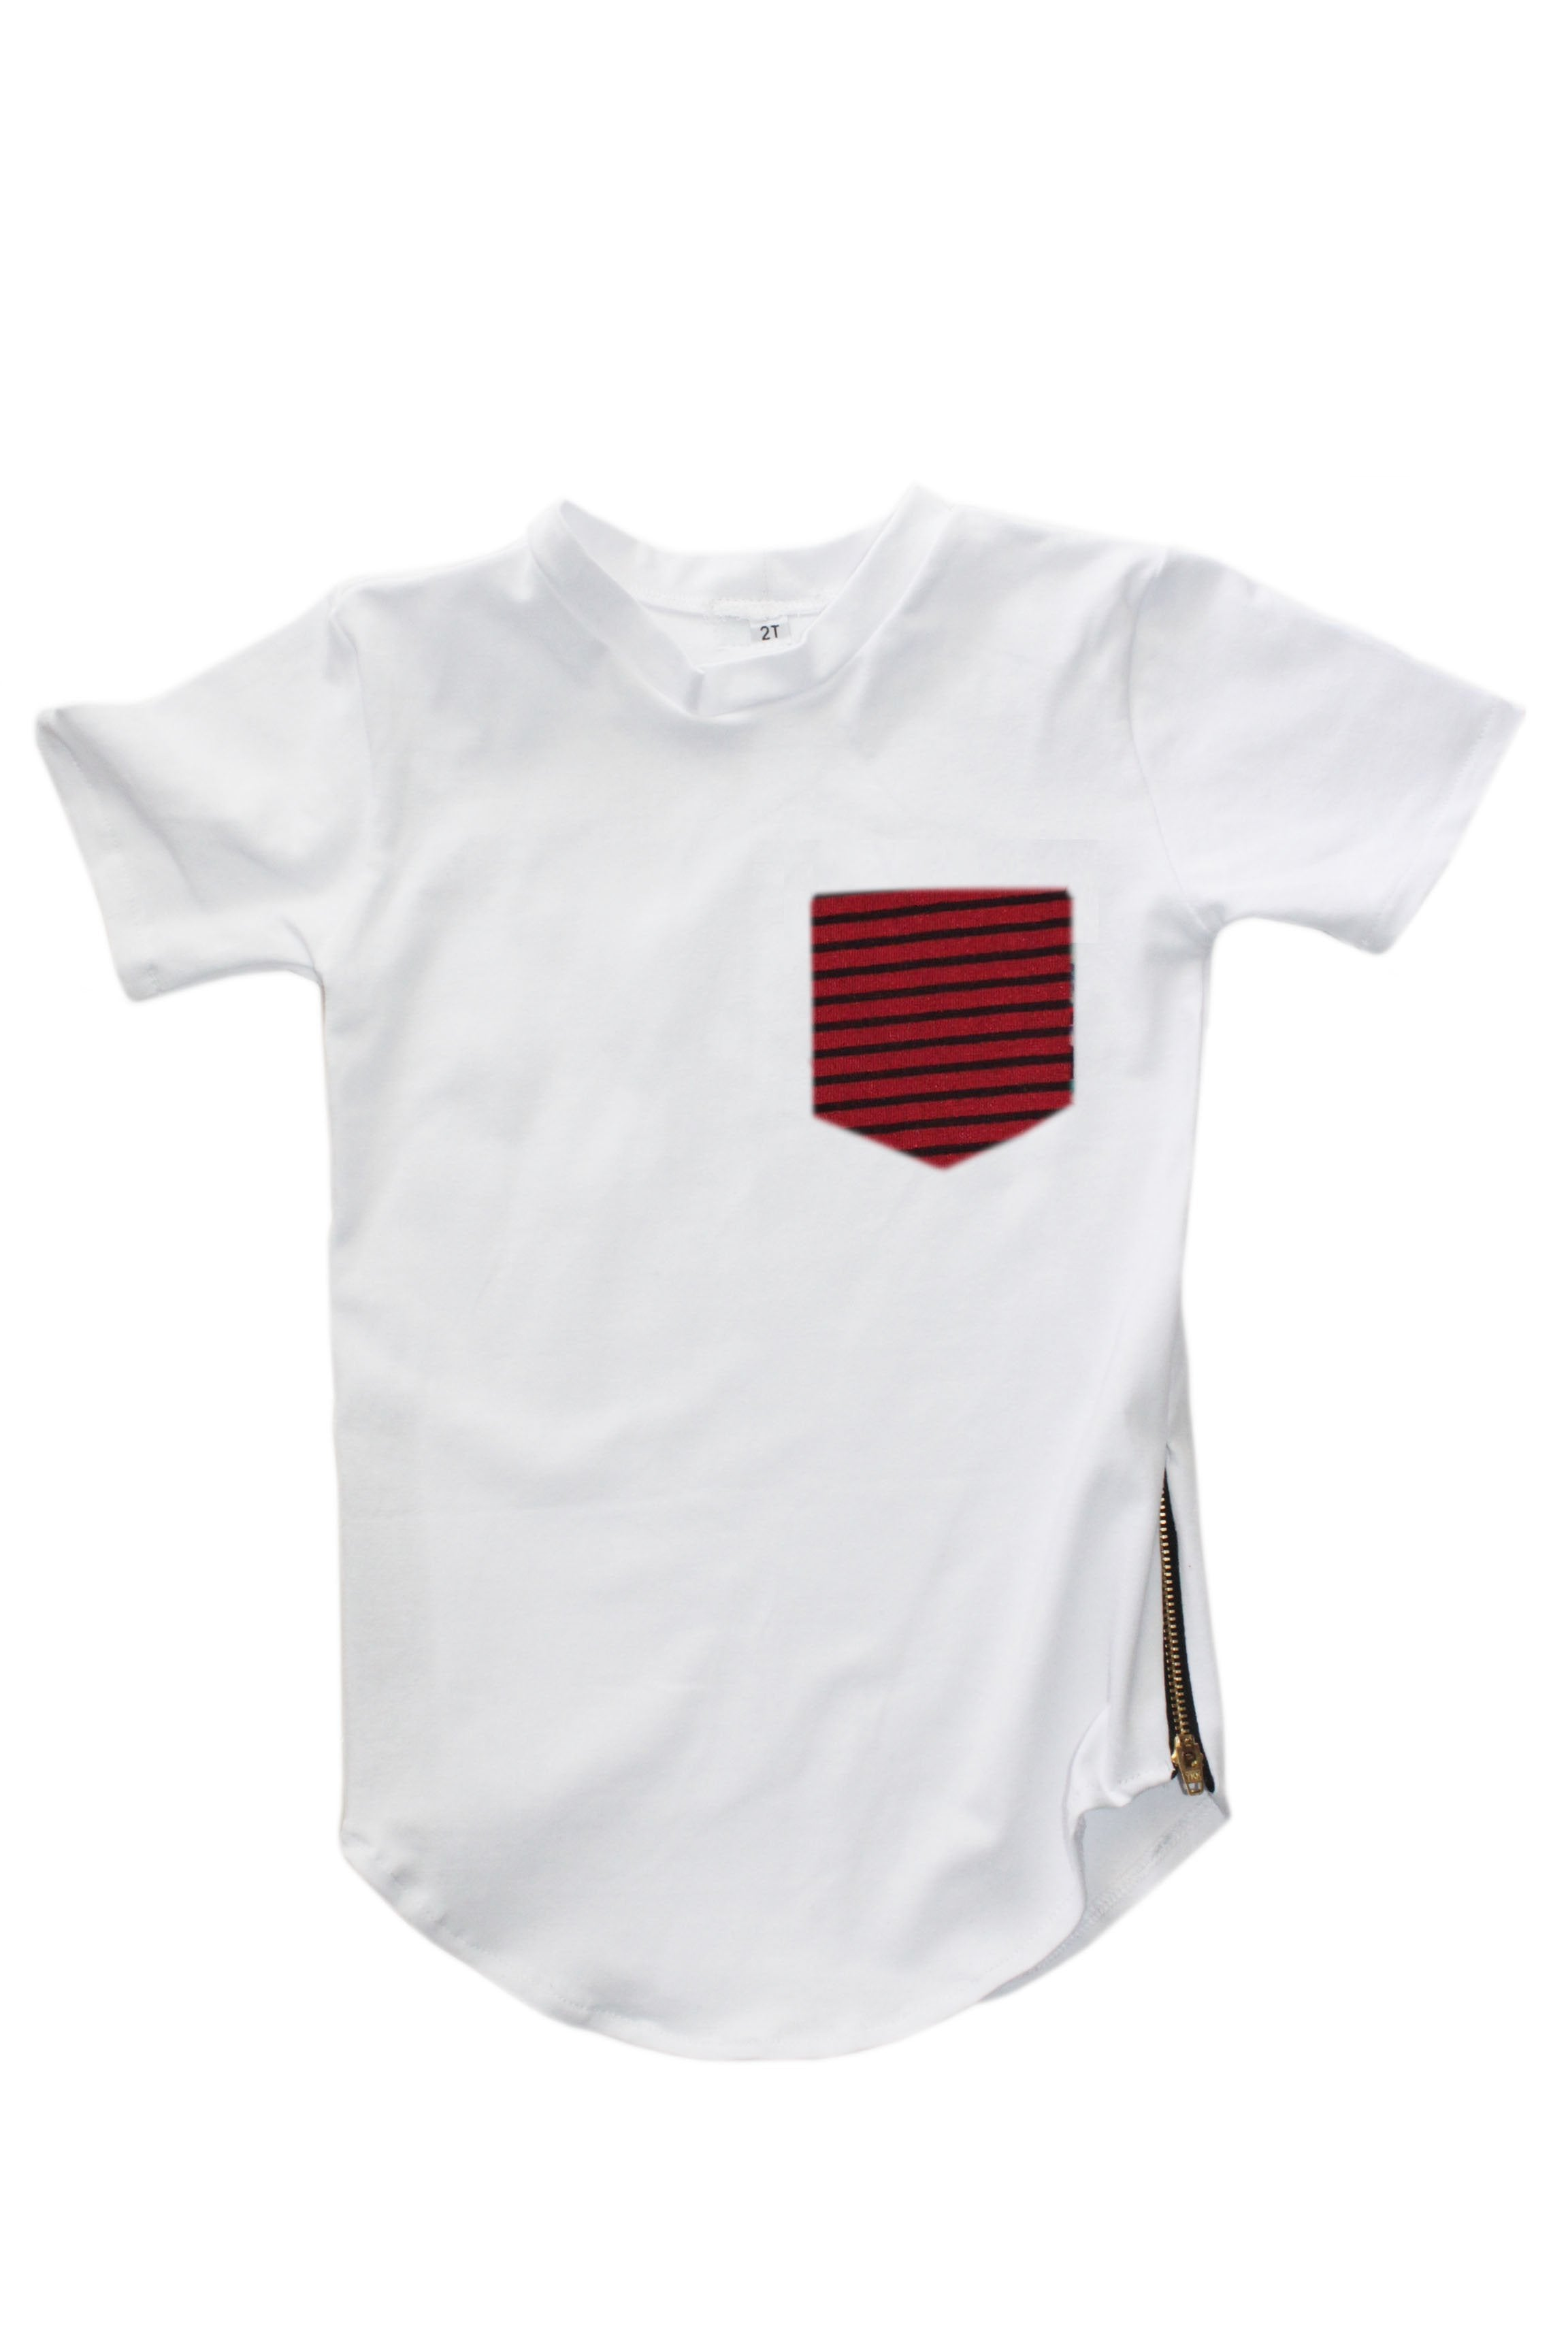 Zipper Pocket Tee - RB Striped (White)